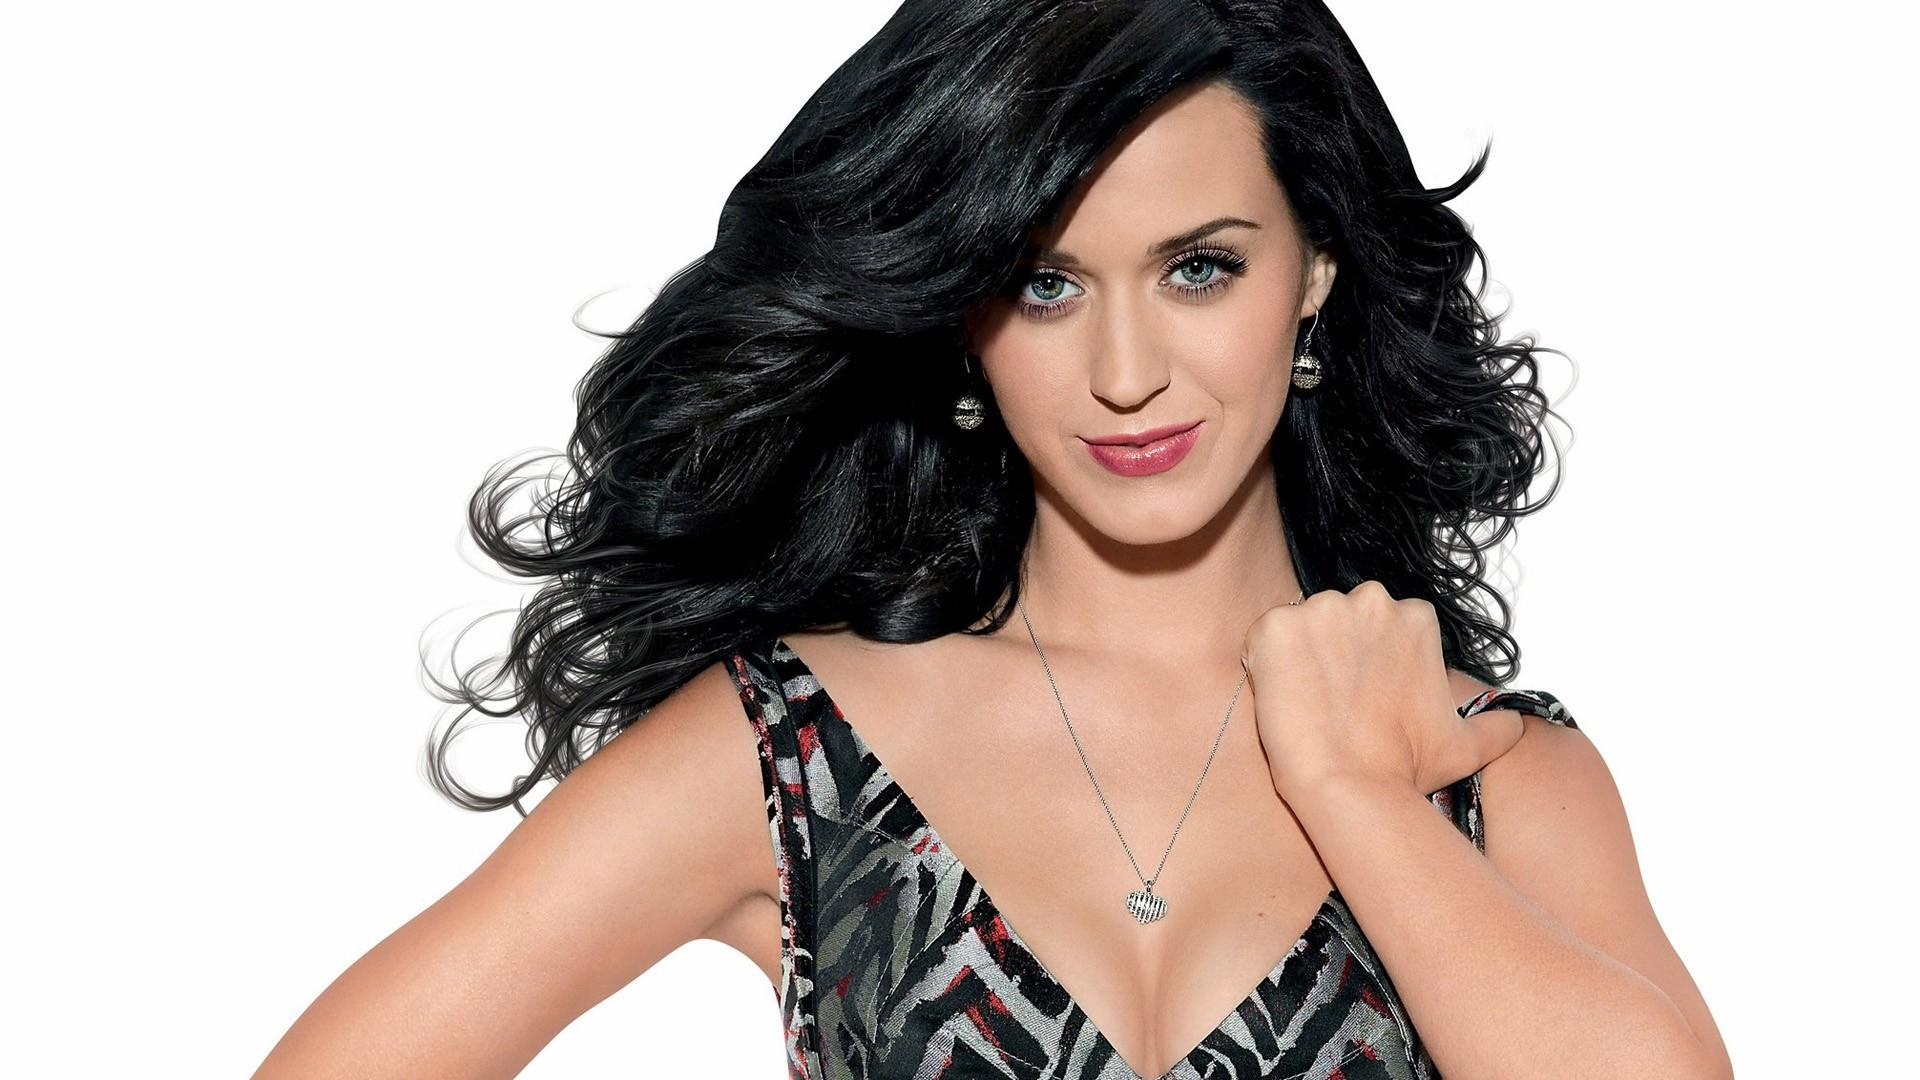 Super Bowl halftime show 2015 performers: Katy Perry joined by Lenny Kravitz, Missy Elliott